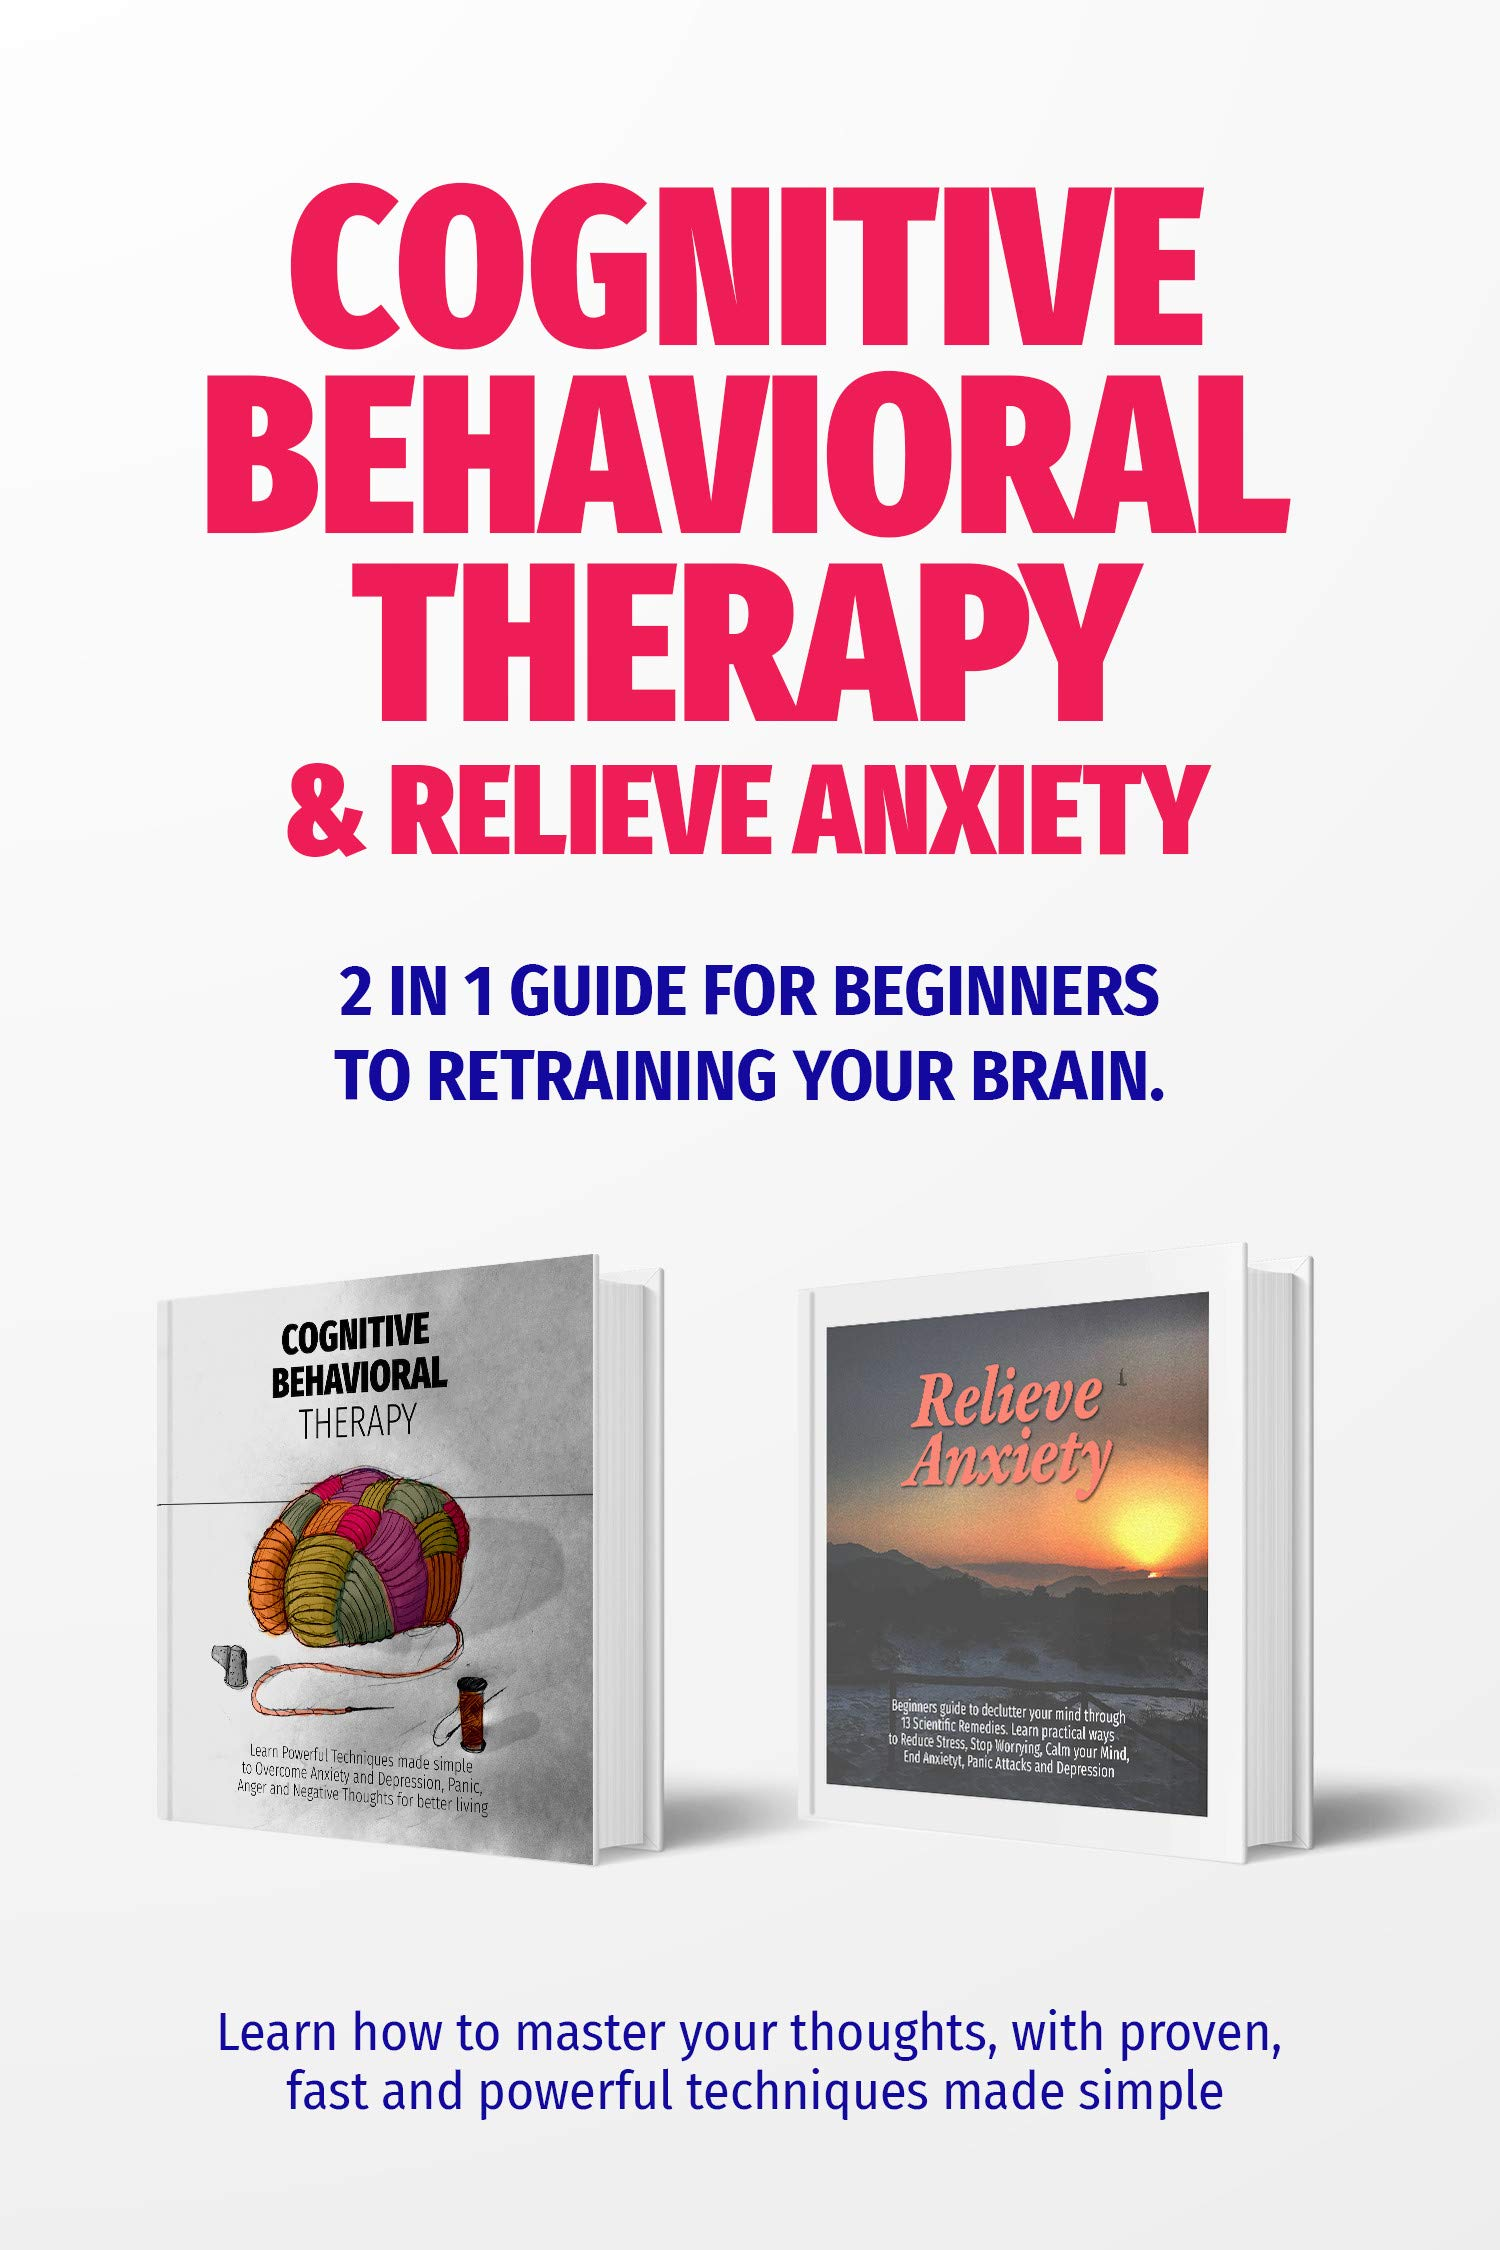 COGNITIVE BEHAVIORAL THERAPY, RELIEVE ANXIETY: 2 in 1 guide for beginners to Retraining your Brain. Learn how to Master Your Thoughts, with proven, fast and powerful techniques made simple